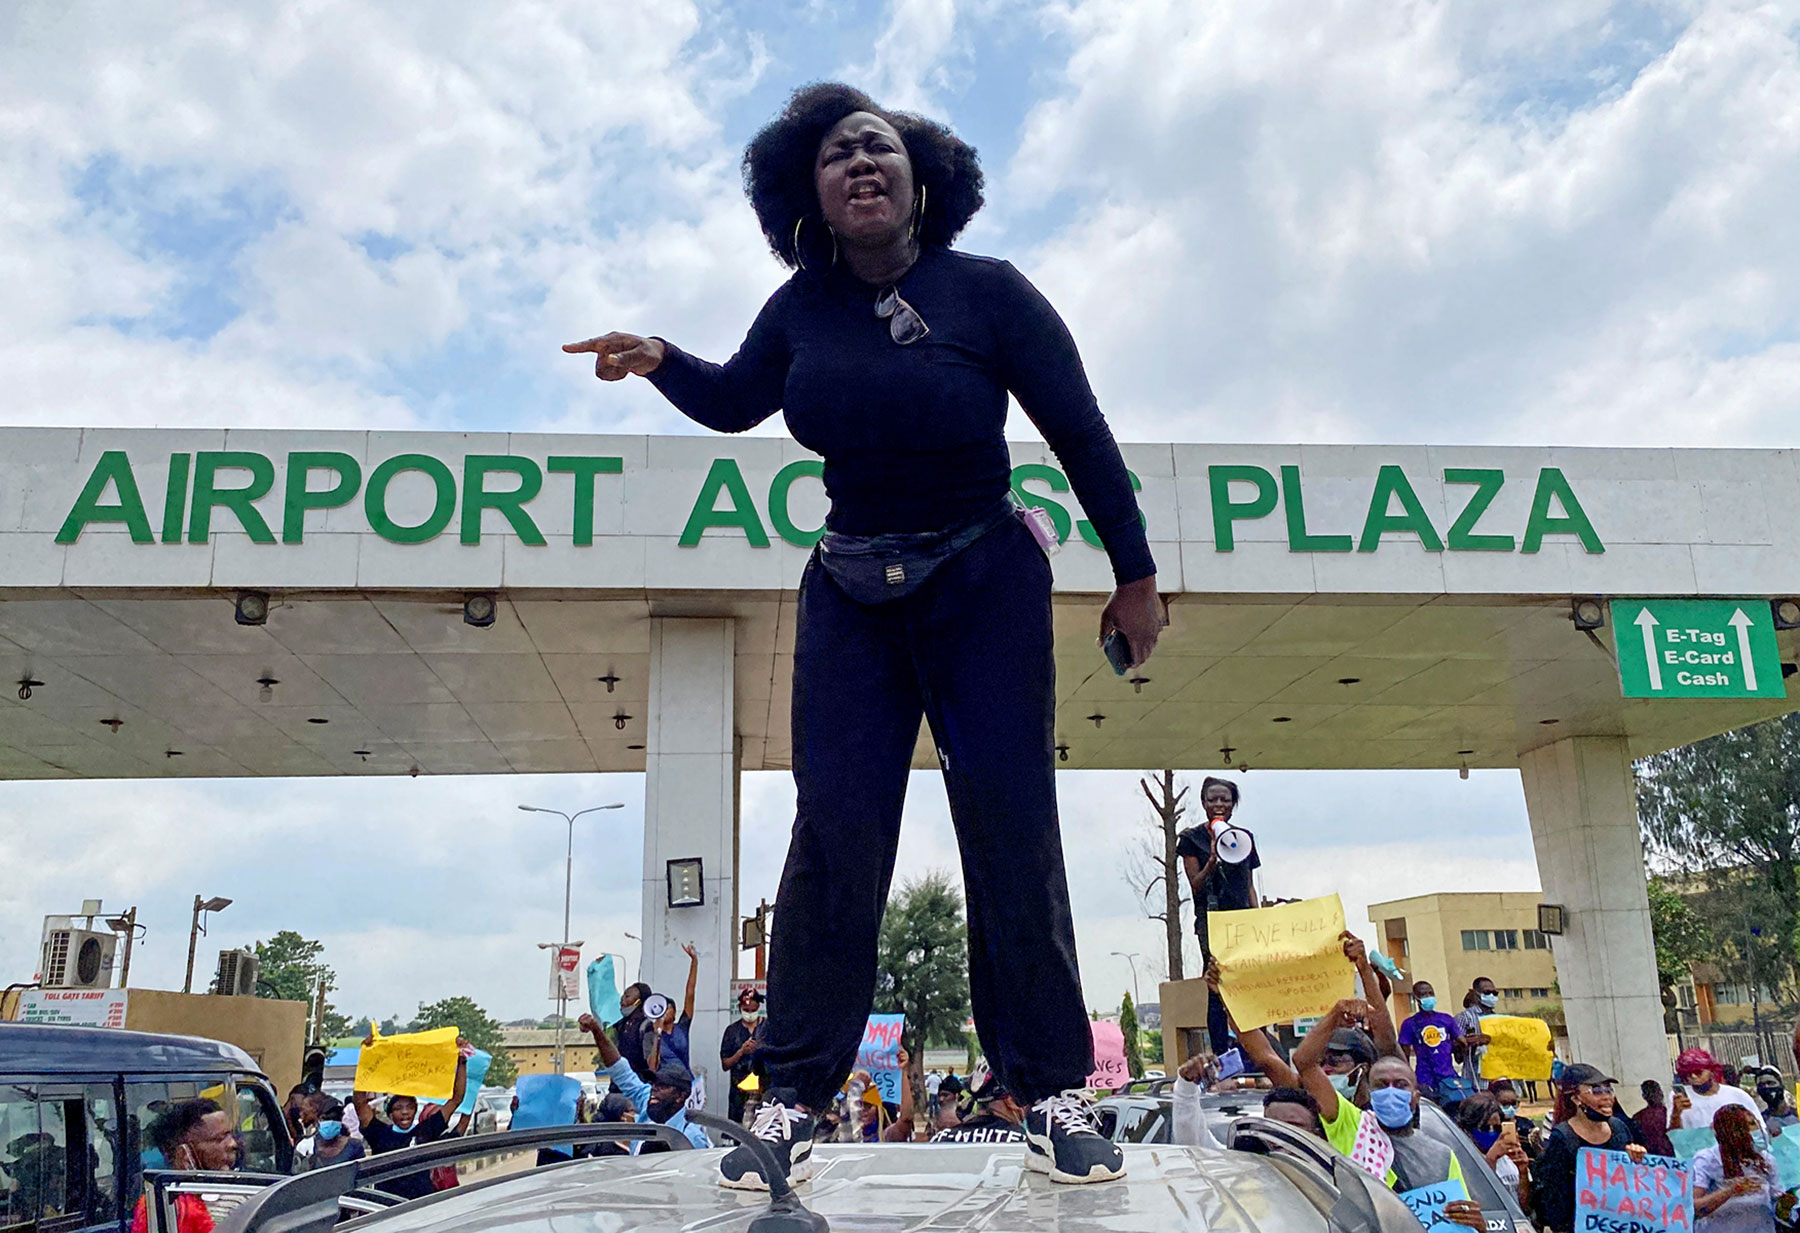 A woman at a protest against police brutality in Lagos, Nigeria.